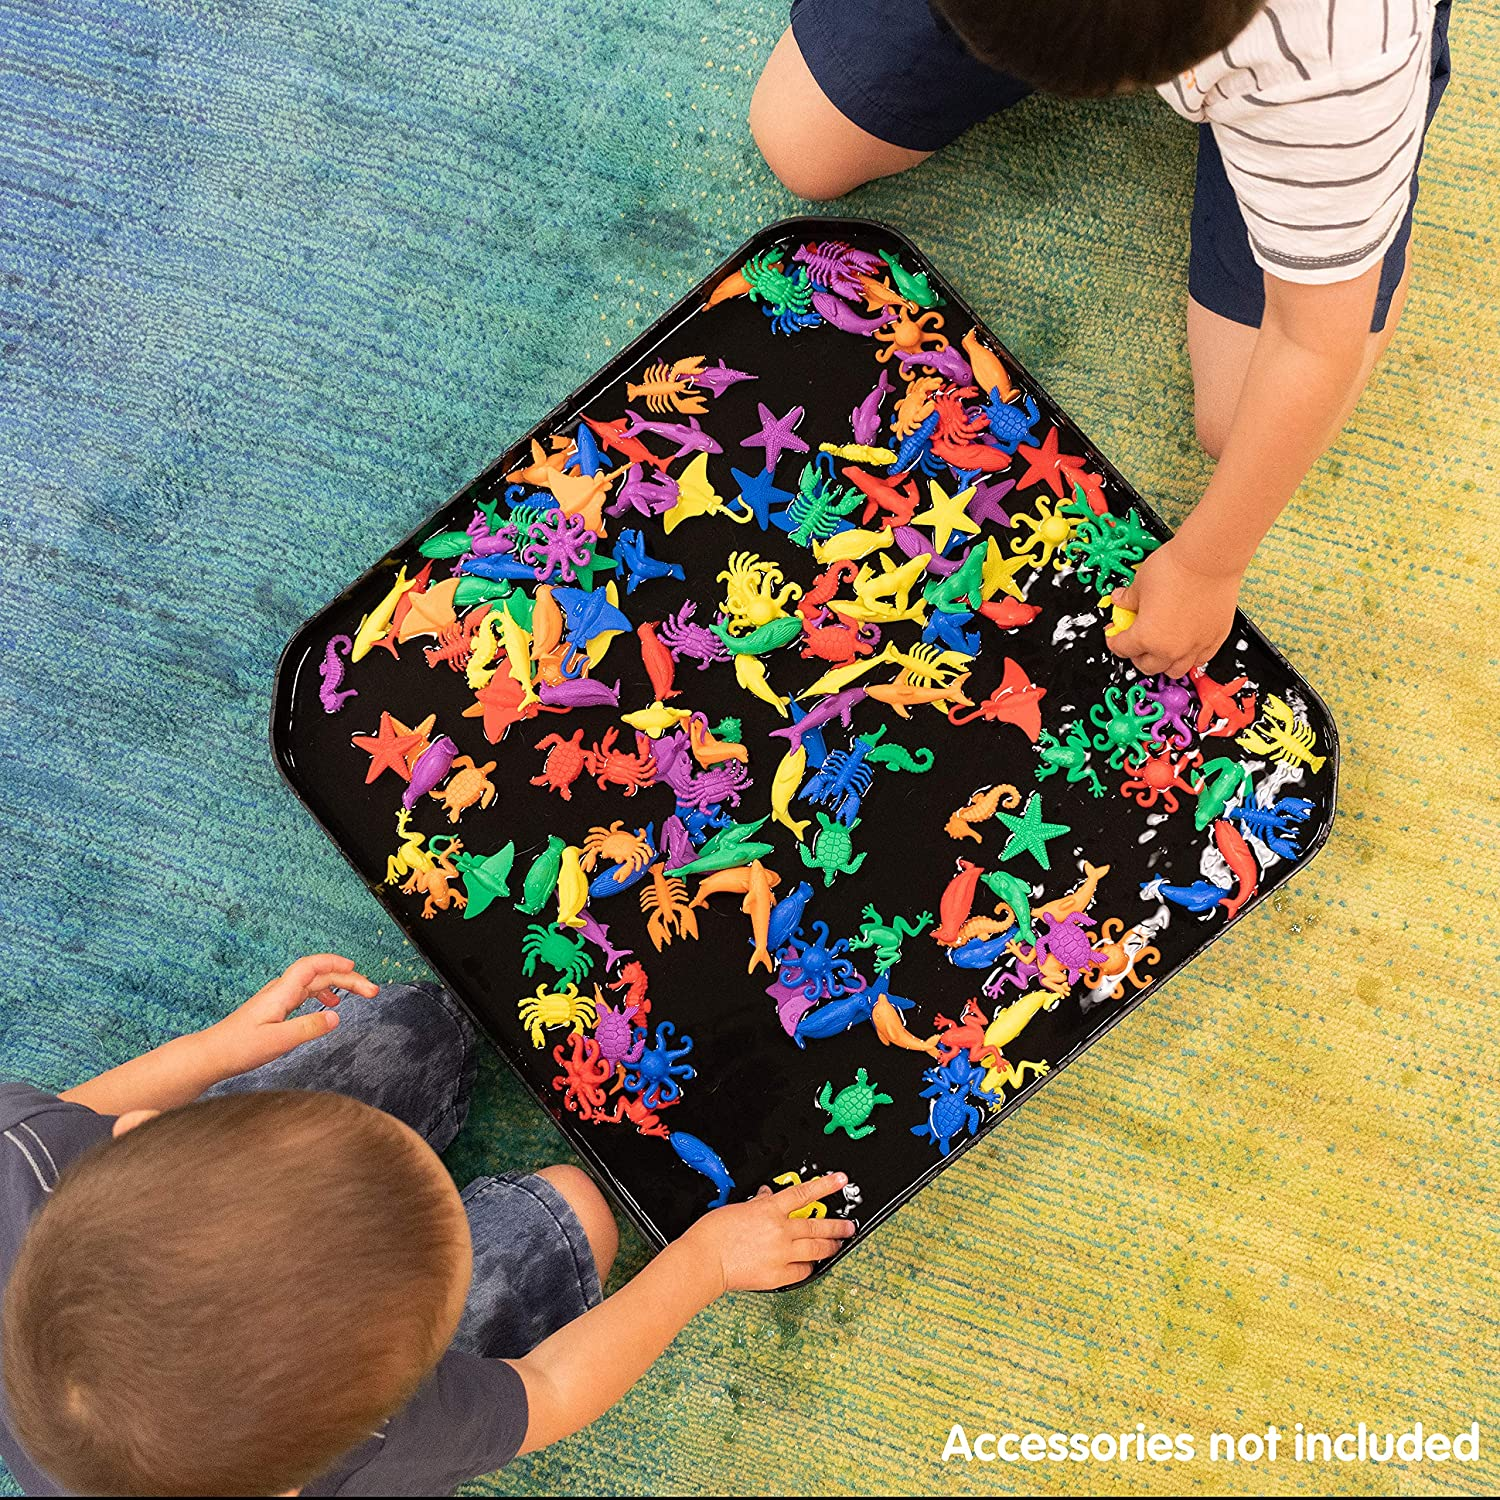 Manipulatives edxeducation-LAD-115 Fun2 Play Tray Infinite Black Chalkboard for Kids Sensory and Activity Table for Use with Our Fun2 Play Sand and Water Fine Motor Skills Explore Art